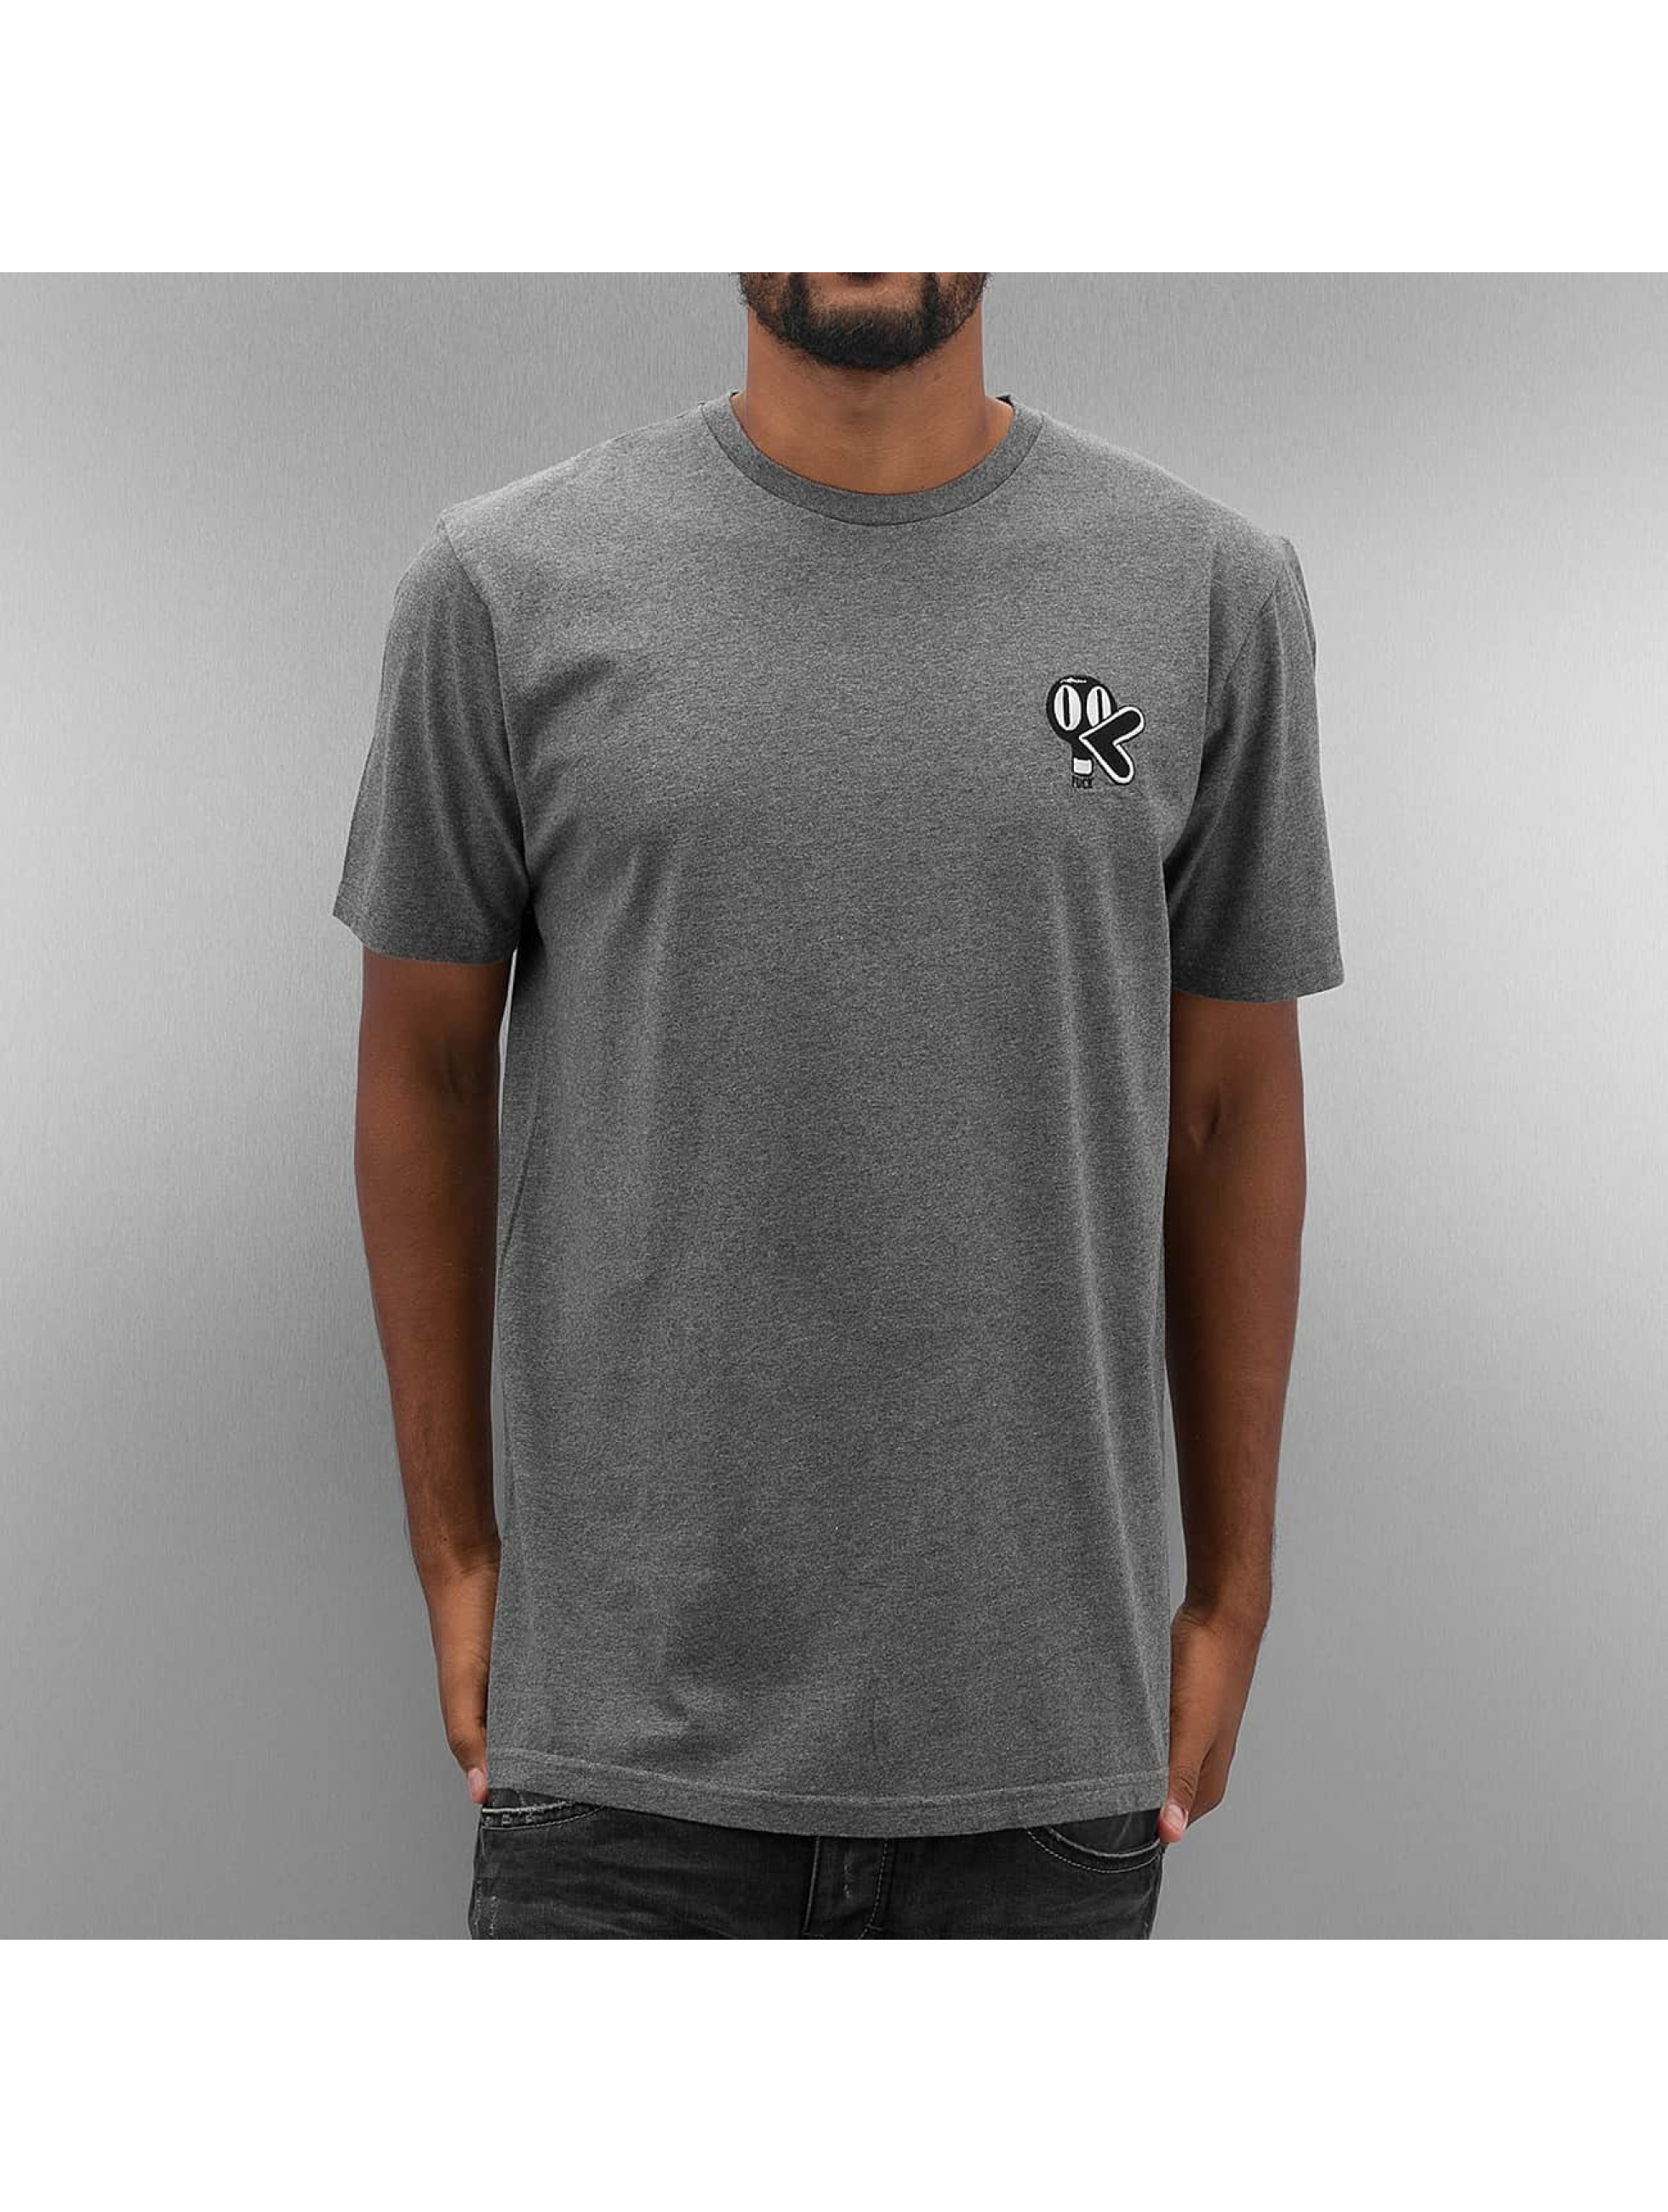 The Dudes T-Shirt Duck grey